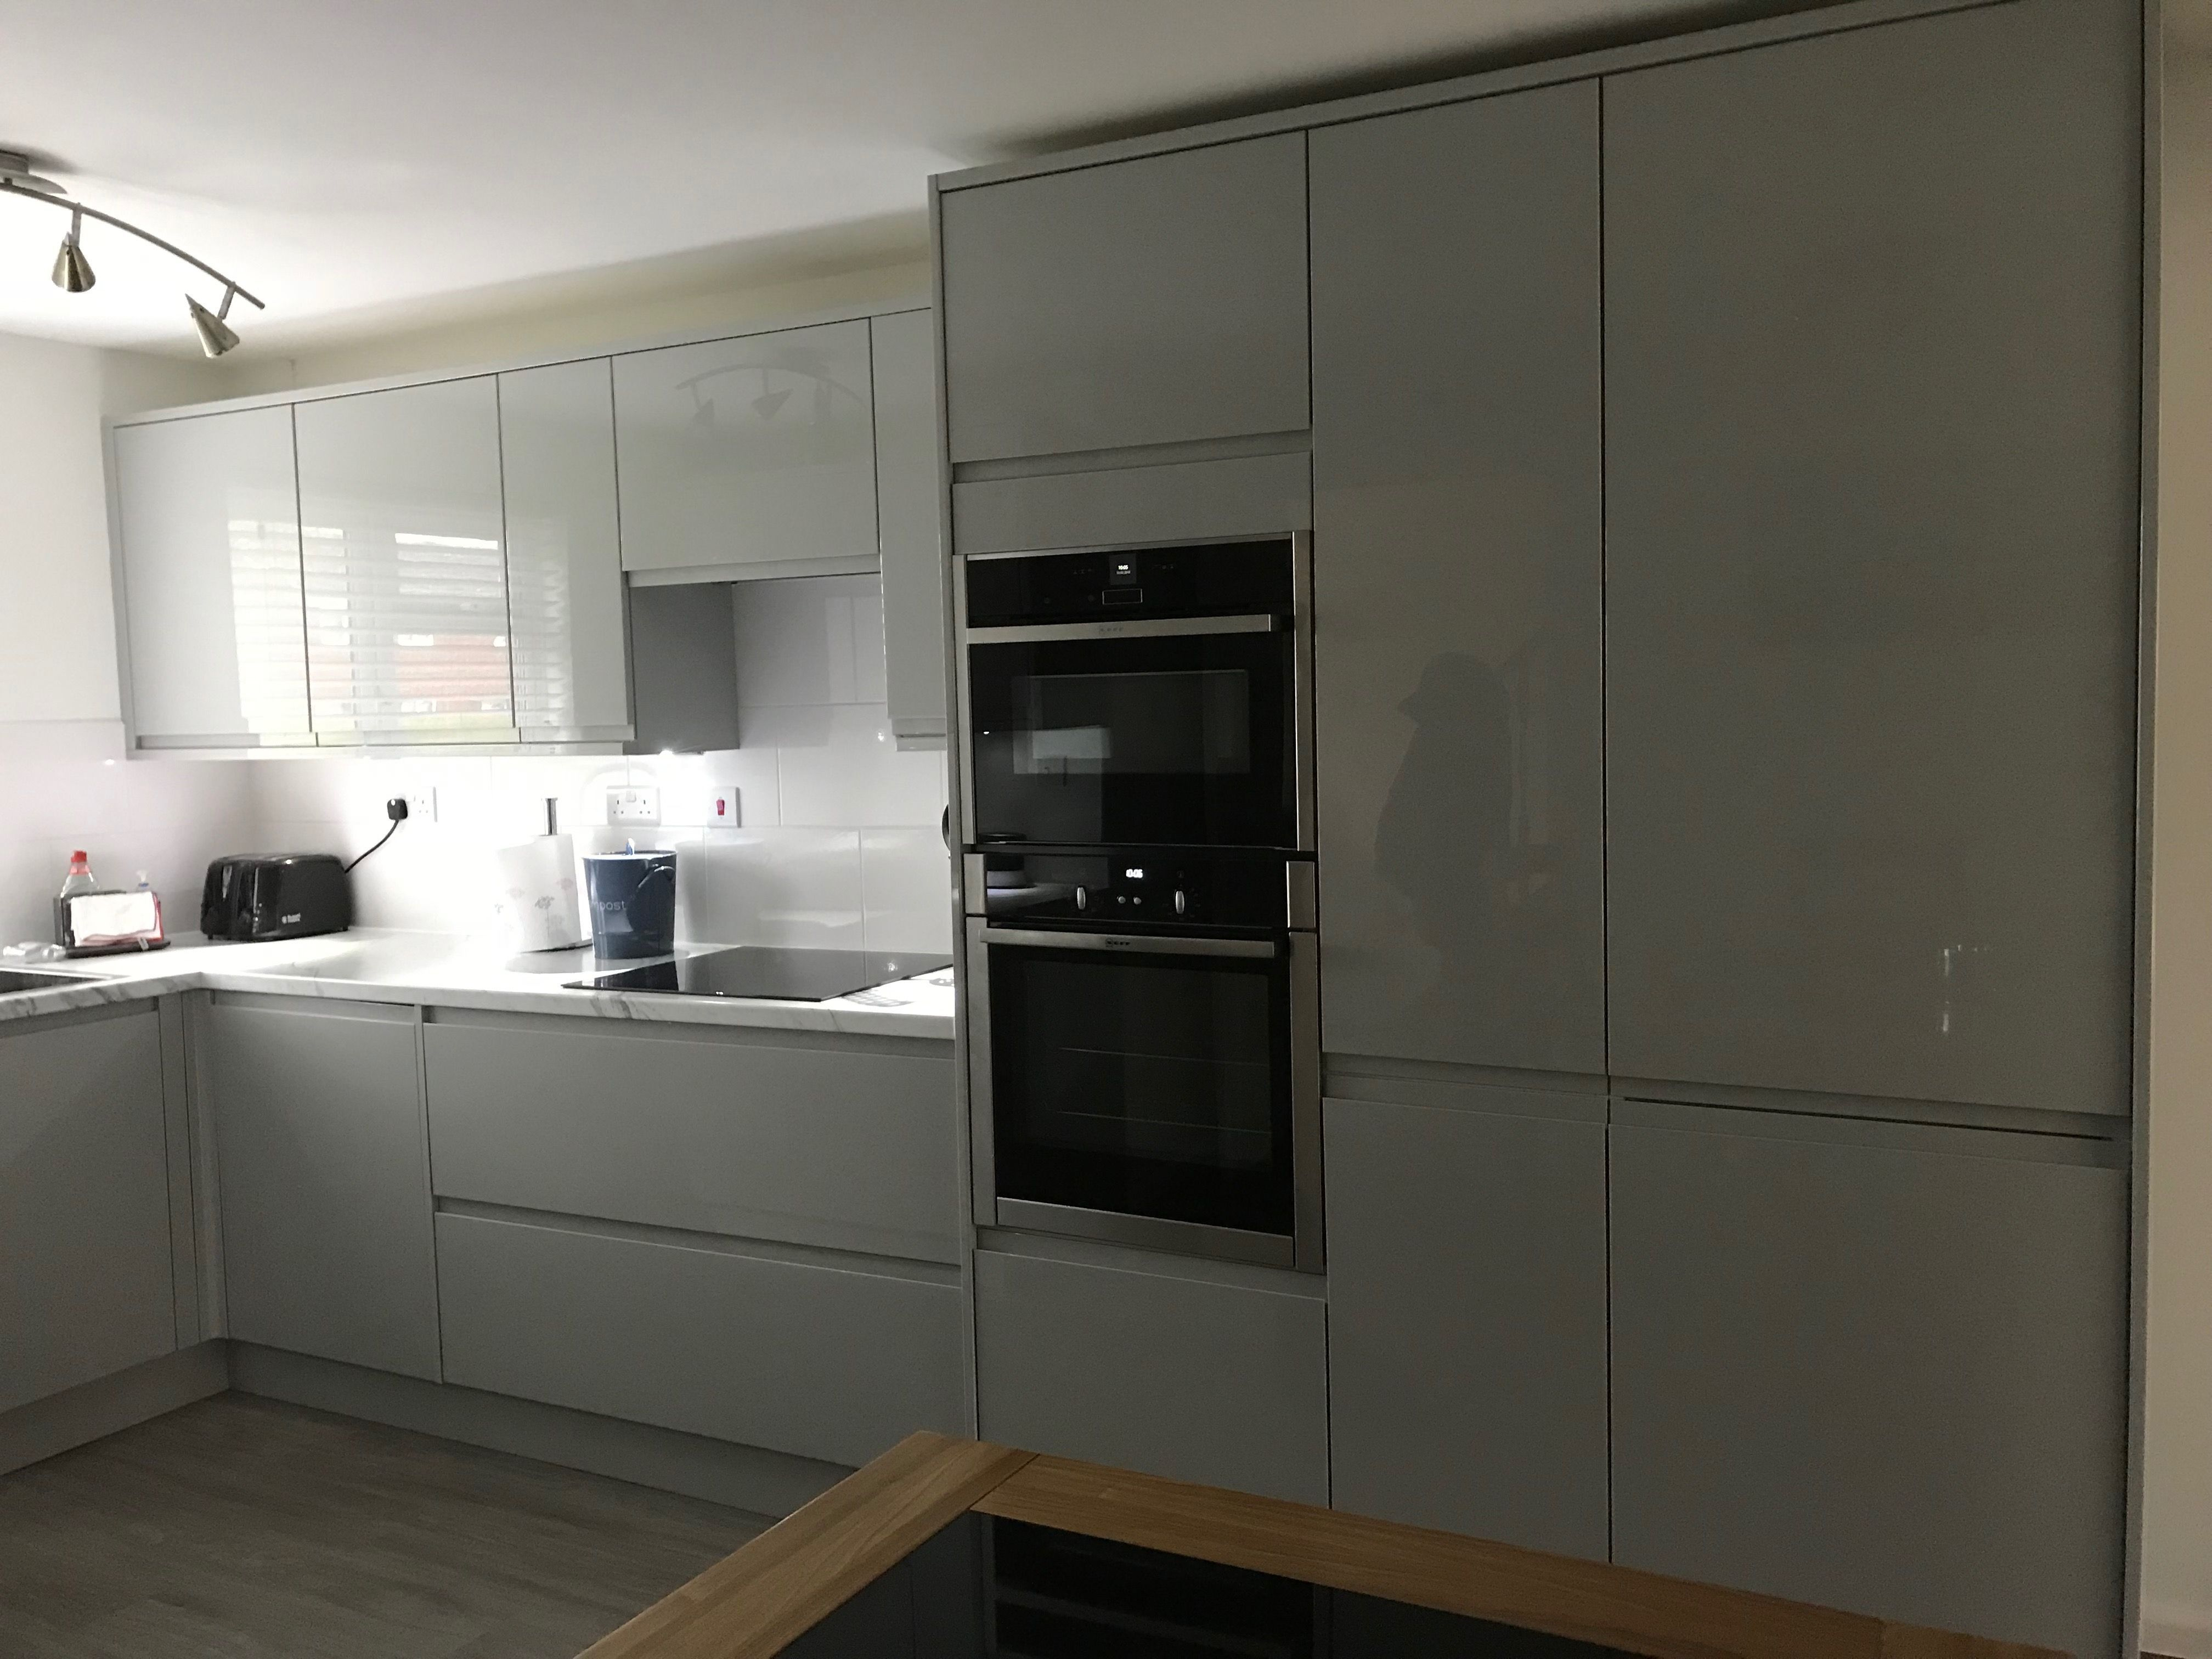 Wickes Kitchen Cupboard Doors Wickes Kitchens Kitchen Cupboard Doors Kitchen Inspirations